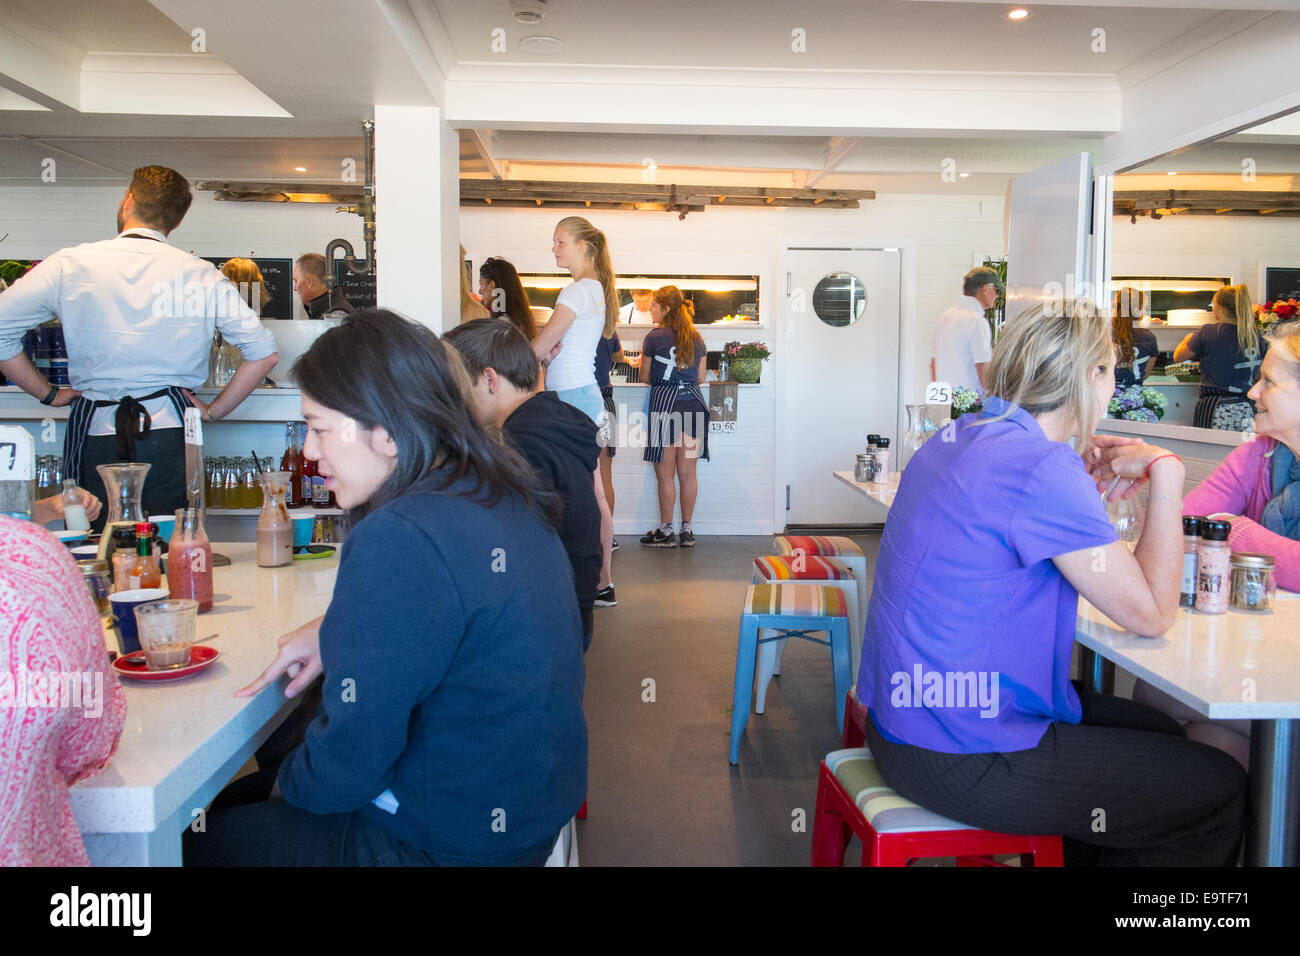 breakfast brunch at the Boathouse cafe in Palm beach,sydney,australia - Stock Image